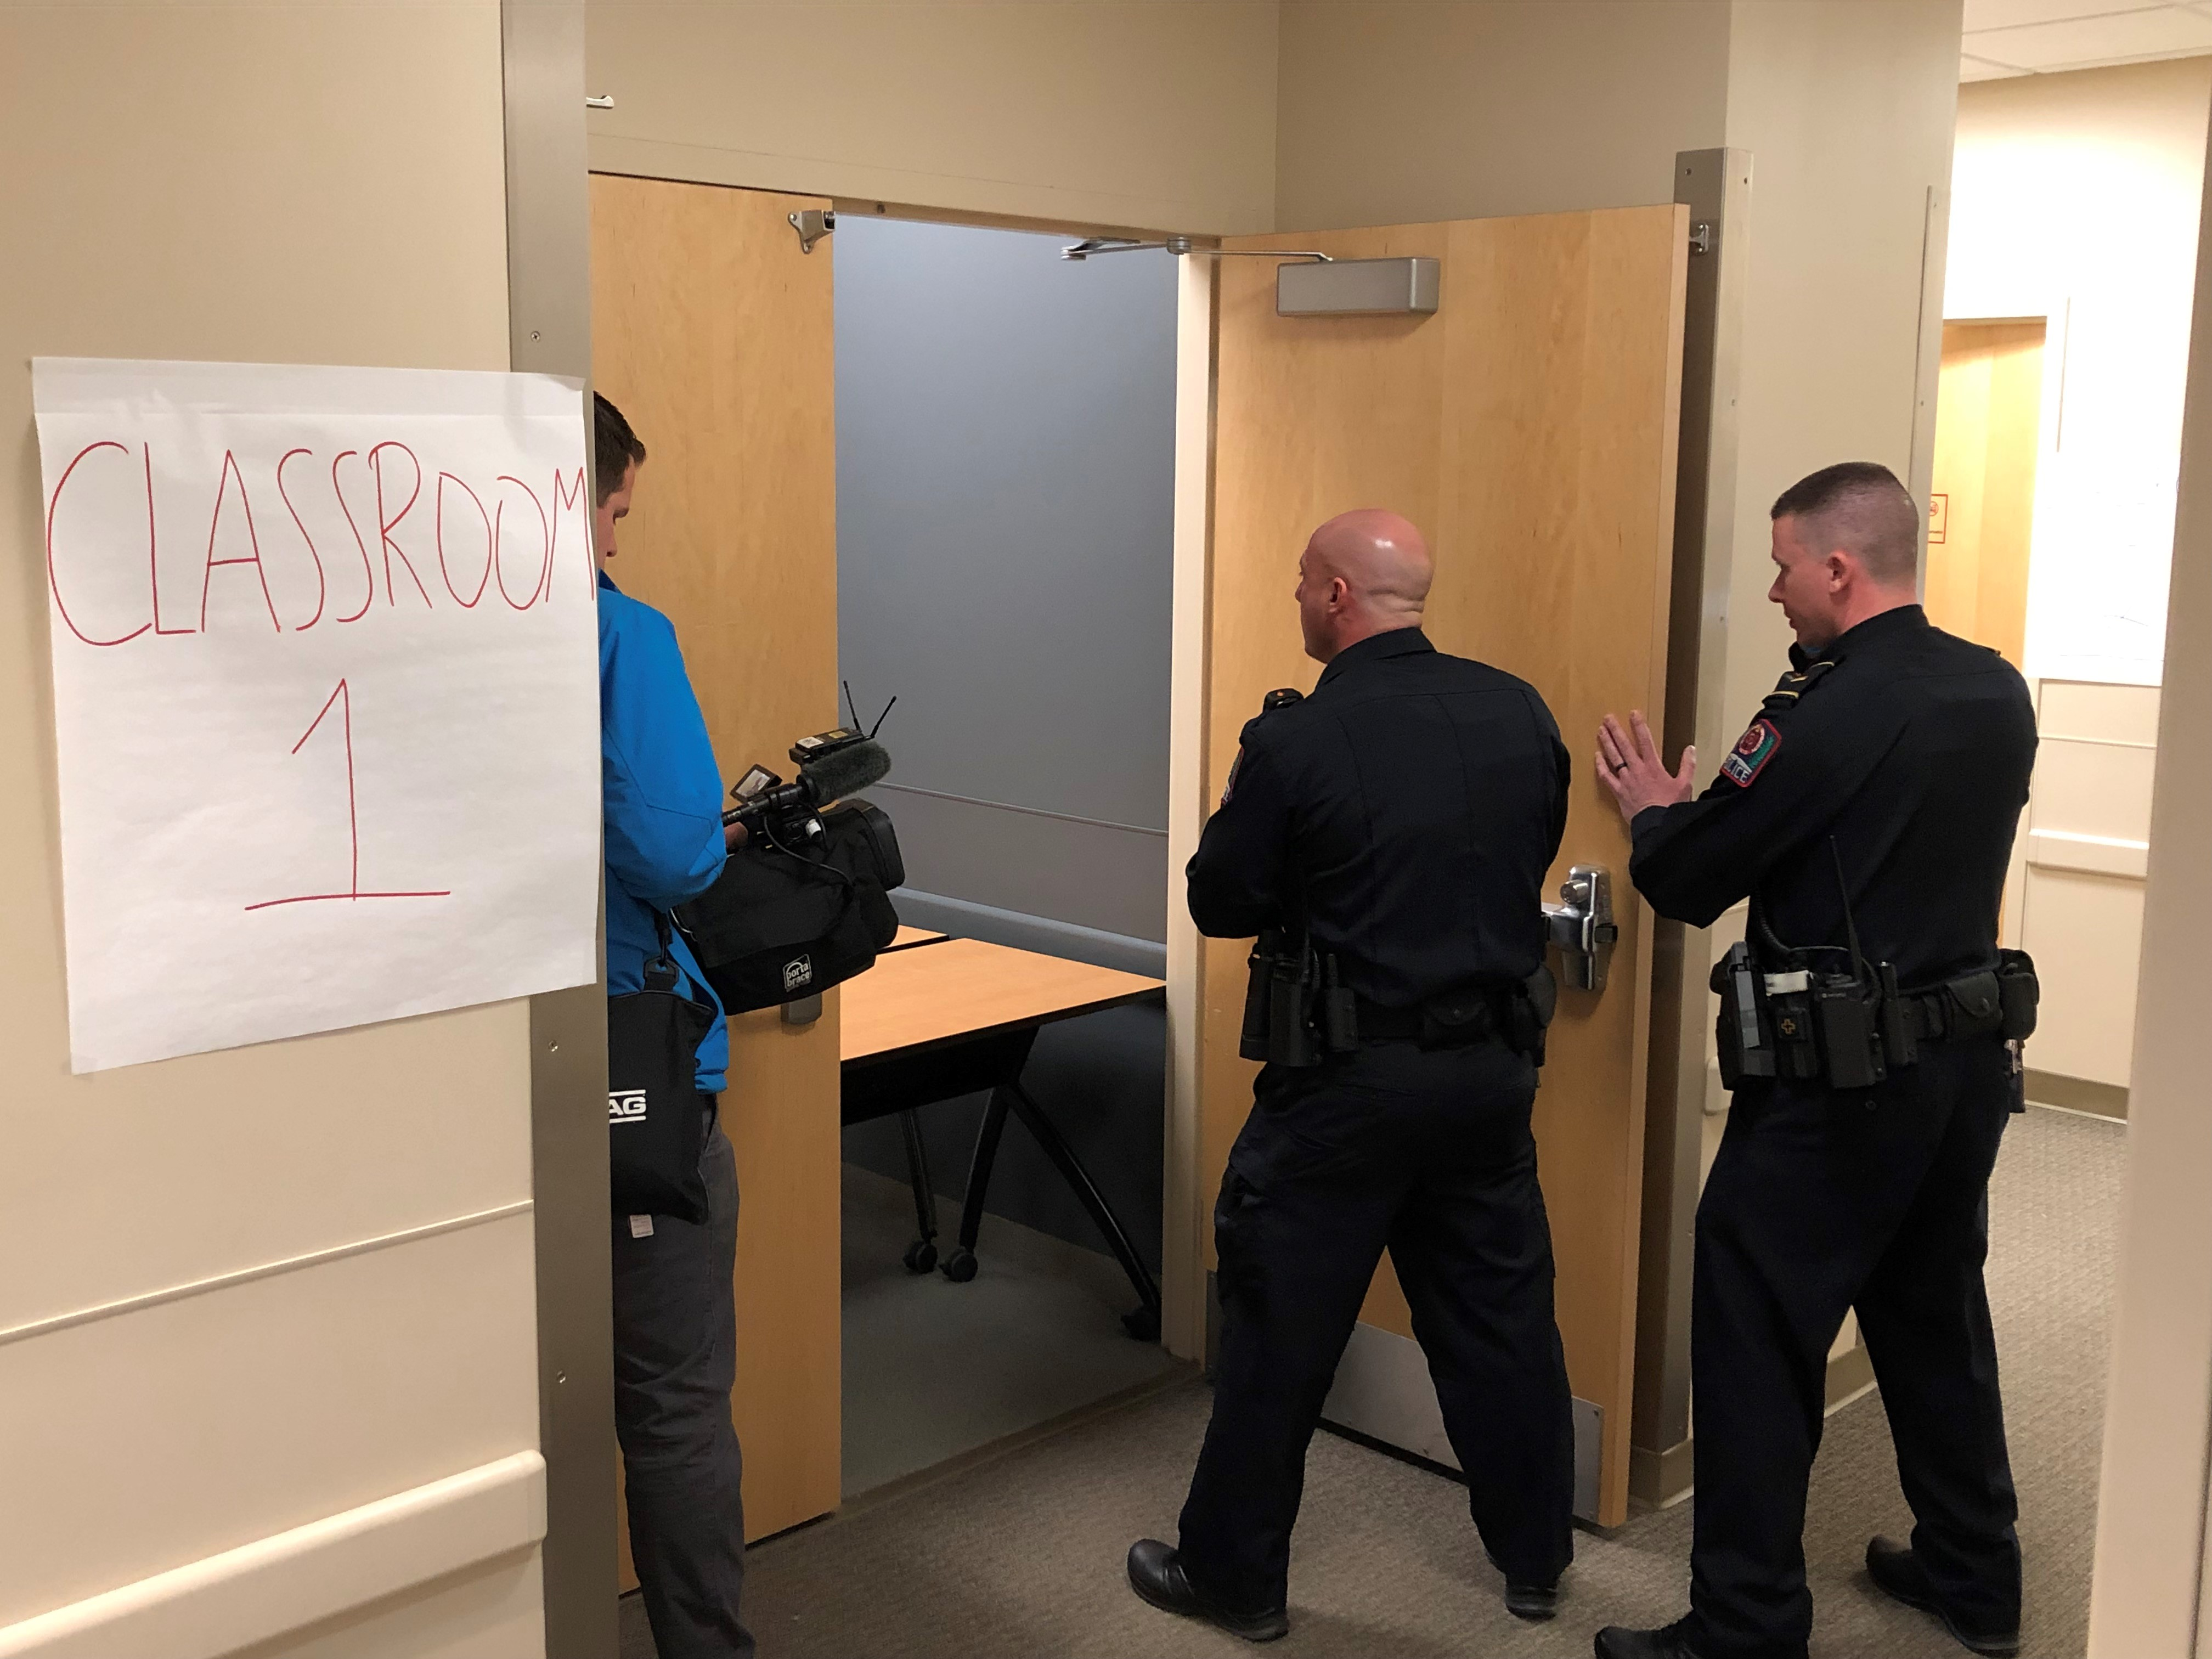 screen grab of active shooter training, three officers going though a door